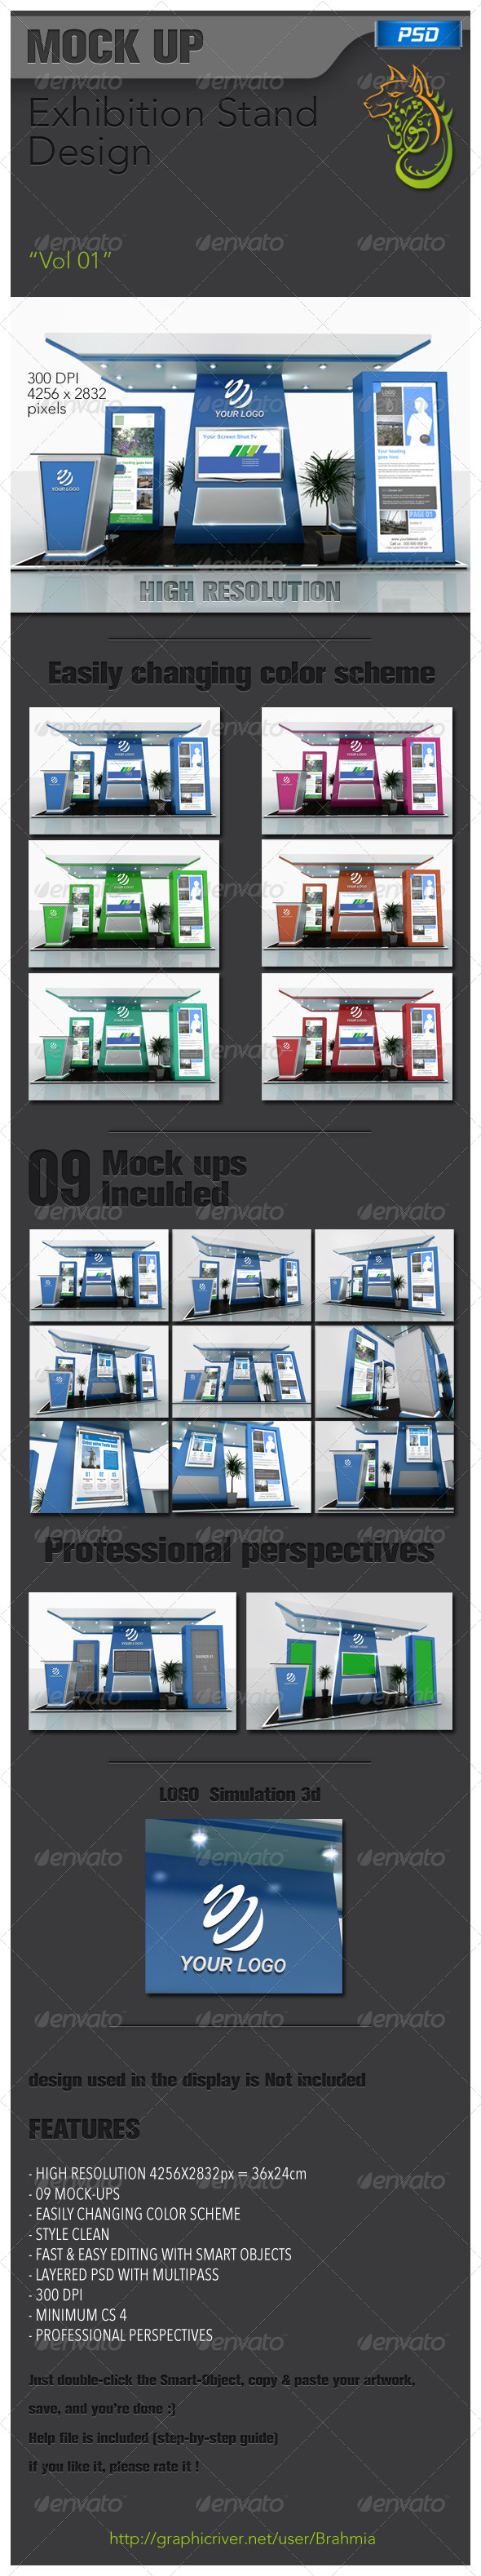 GraphicRiver Exhibition Stand Design Vol 01 5685592